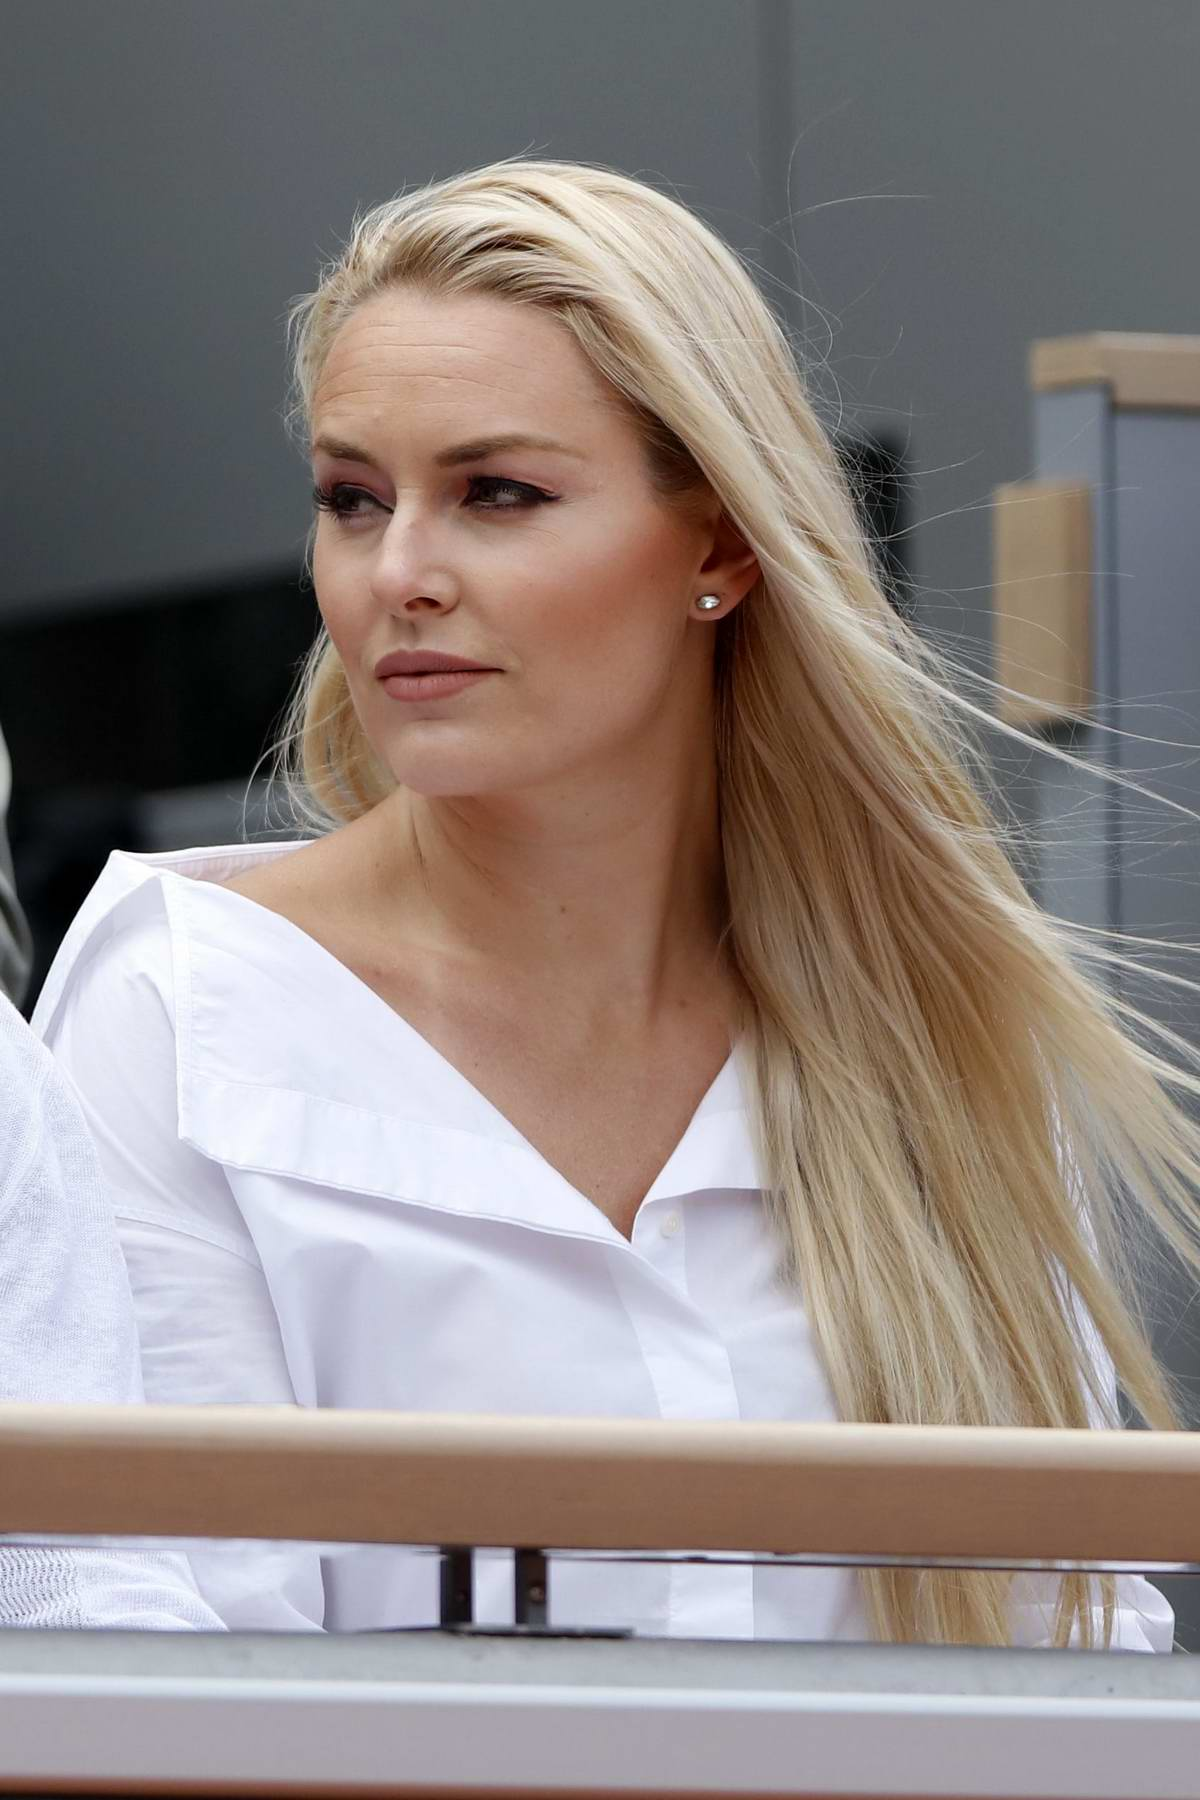 Lindsey Vonn and P.K. Subban spotted during French Open 2019 at Roland-Garros arena in Paris, France